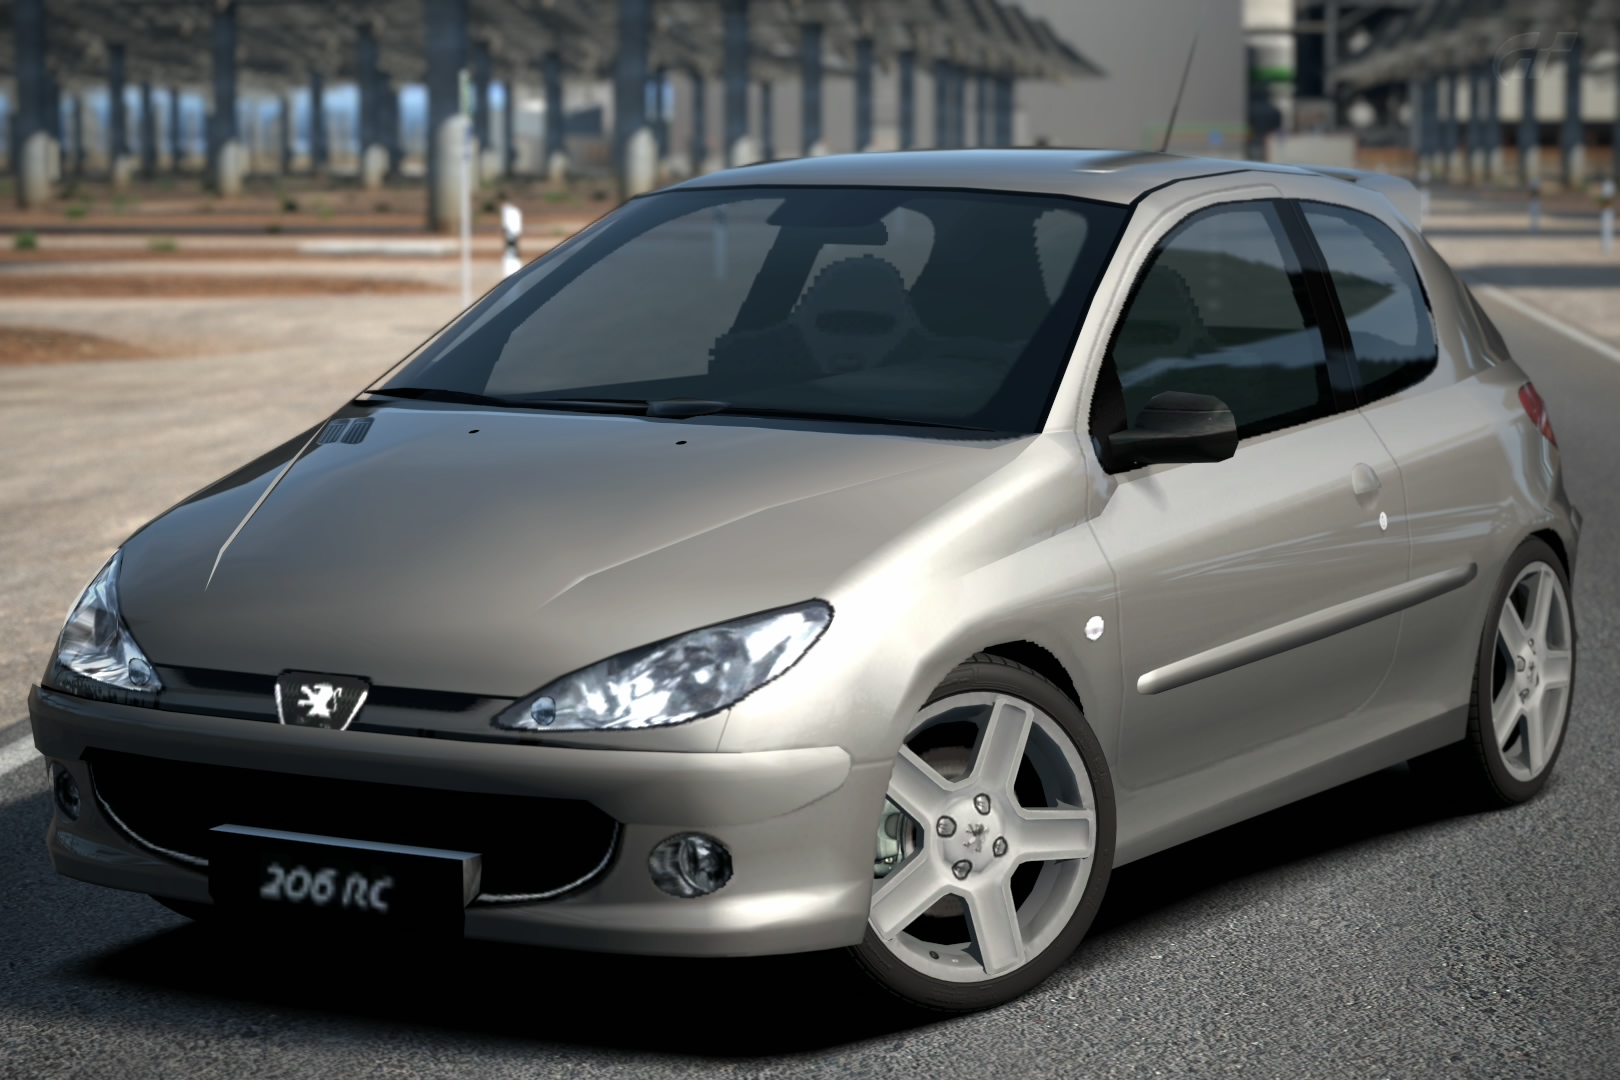 Peugeot 206 RC '03 | Gran Turismo Wiki | FANDOM powered by ...